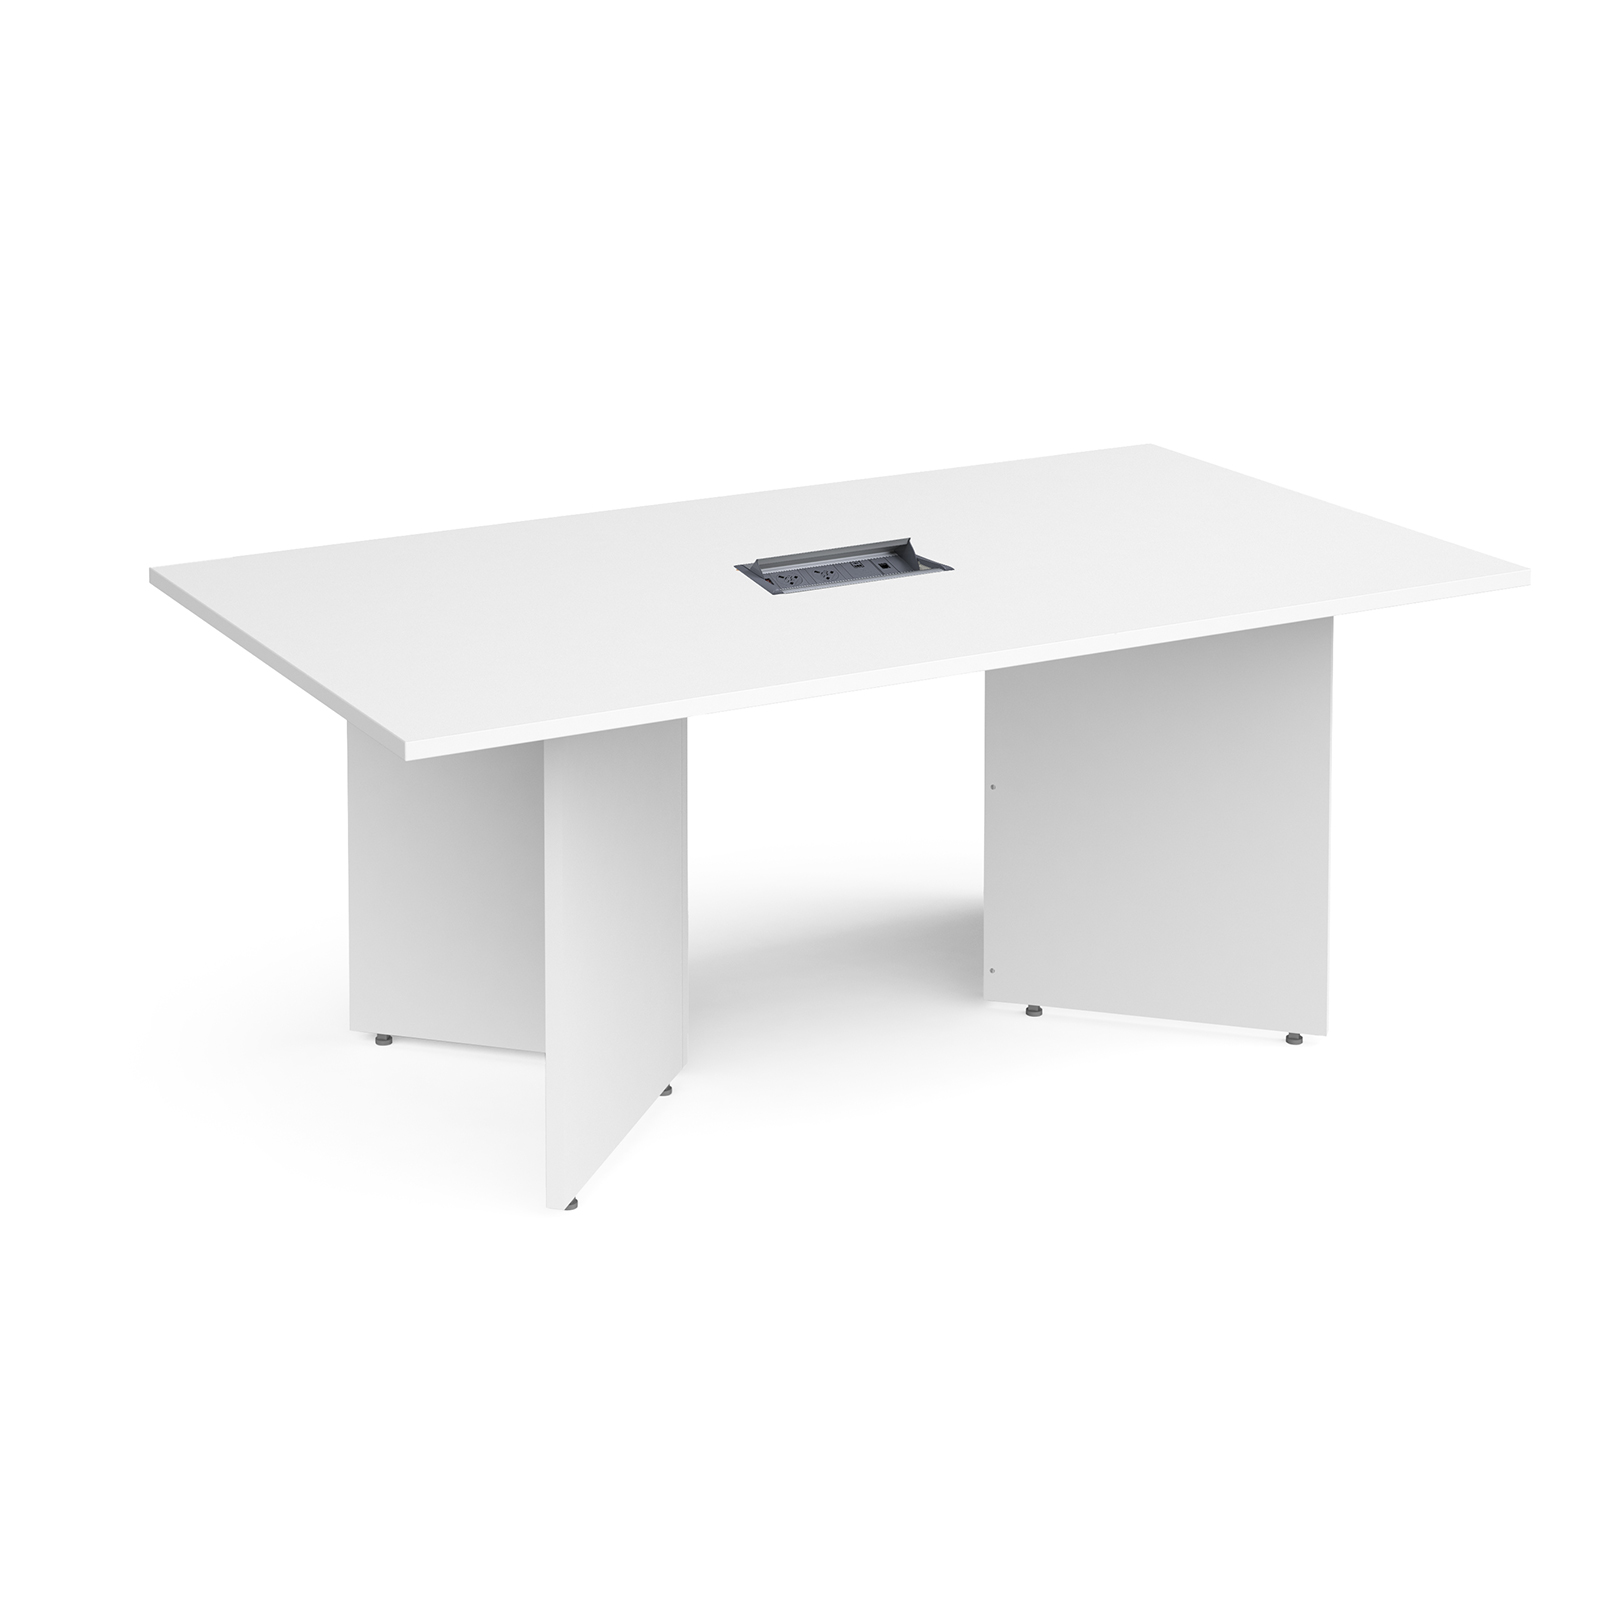 Boardroom / Meeting Arrow head leg rectangular boardroom table 1800mm x 1000mm in white with central cutout and Aero power module